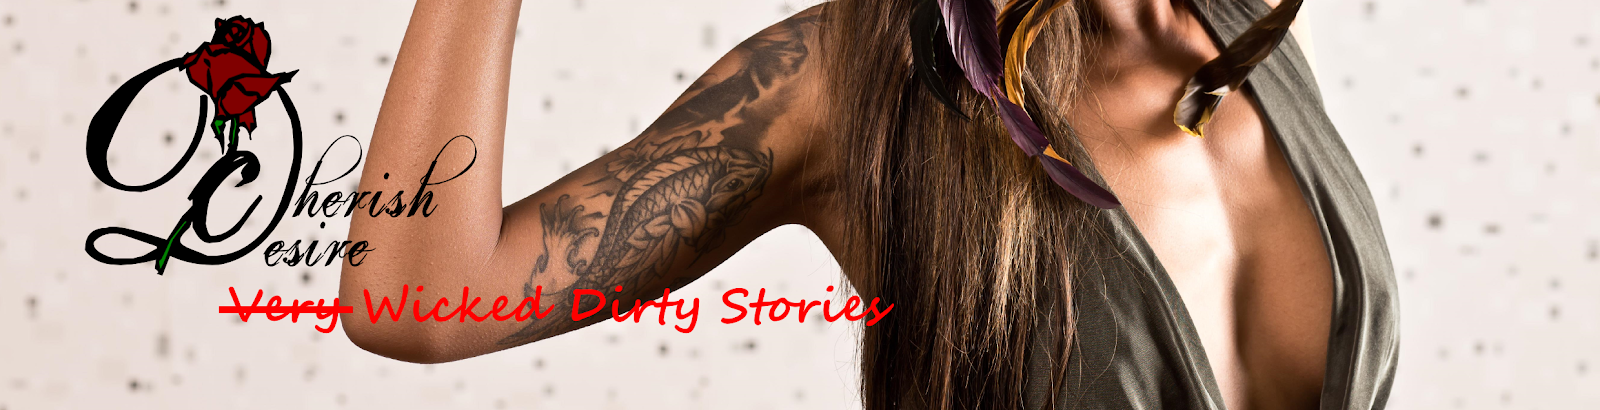 Very Wicked Dirty Stories, Max D, erotica